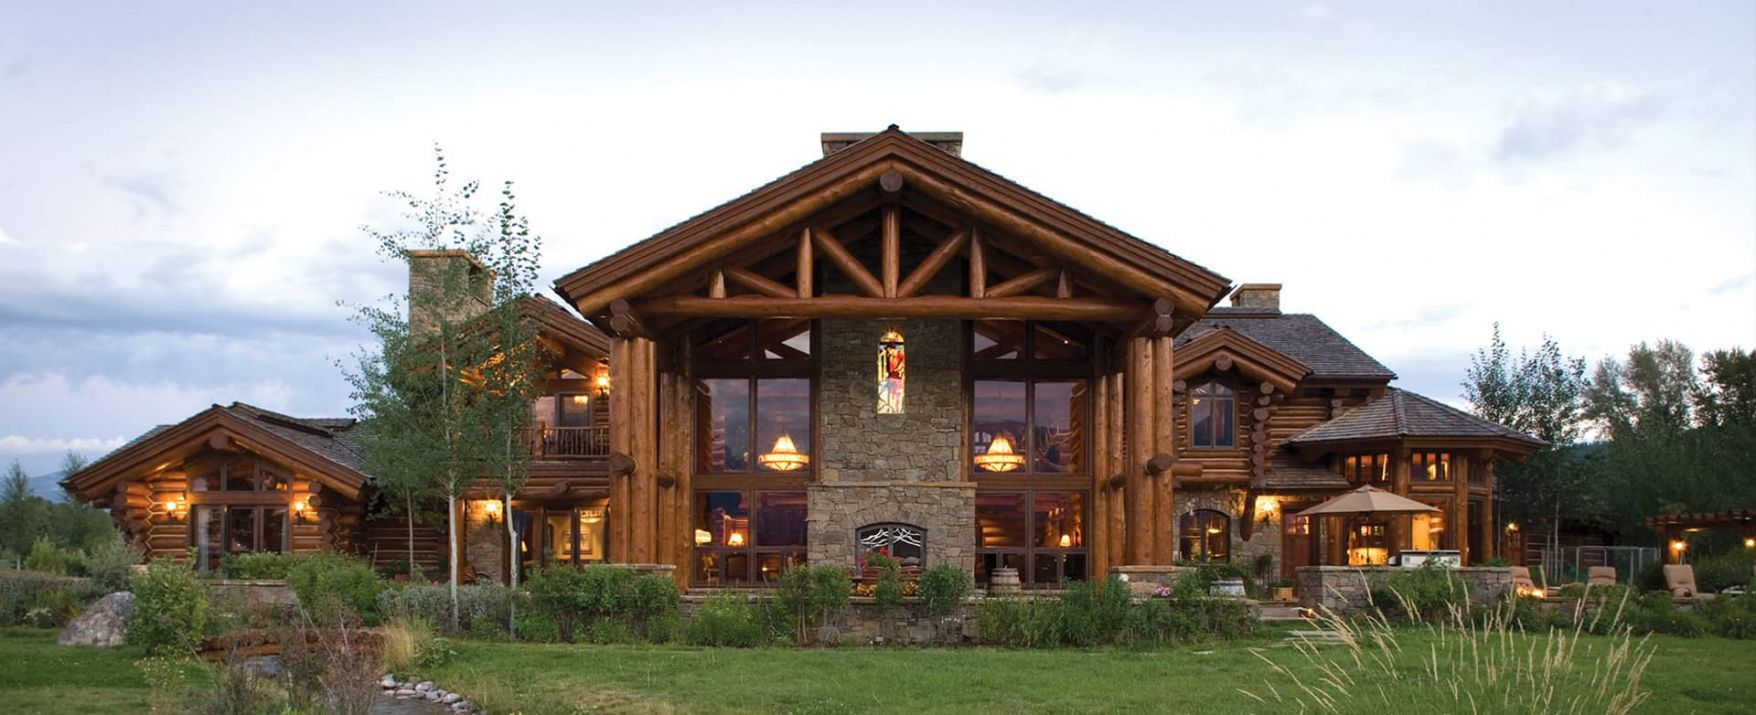 Inspirational Rustic Luxury House Plans Check More At Http Www Jnnsysy Com Rustic Luxury House Plans Mountain House Plans Log Homes Luxury House Designs